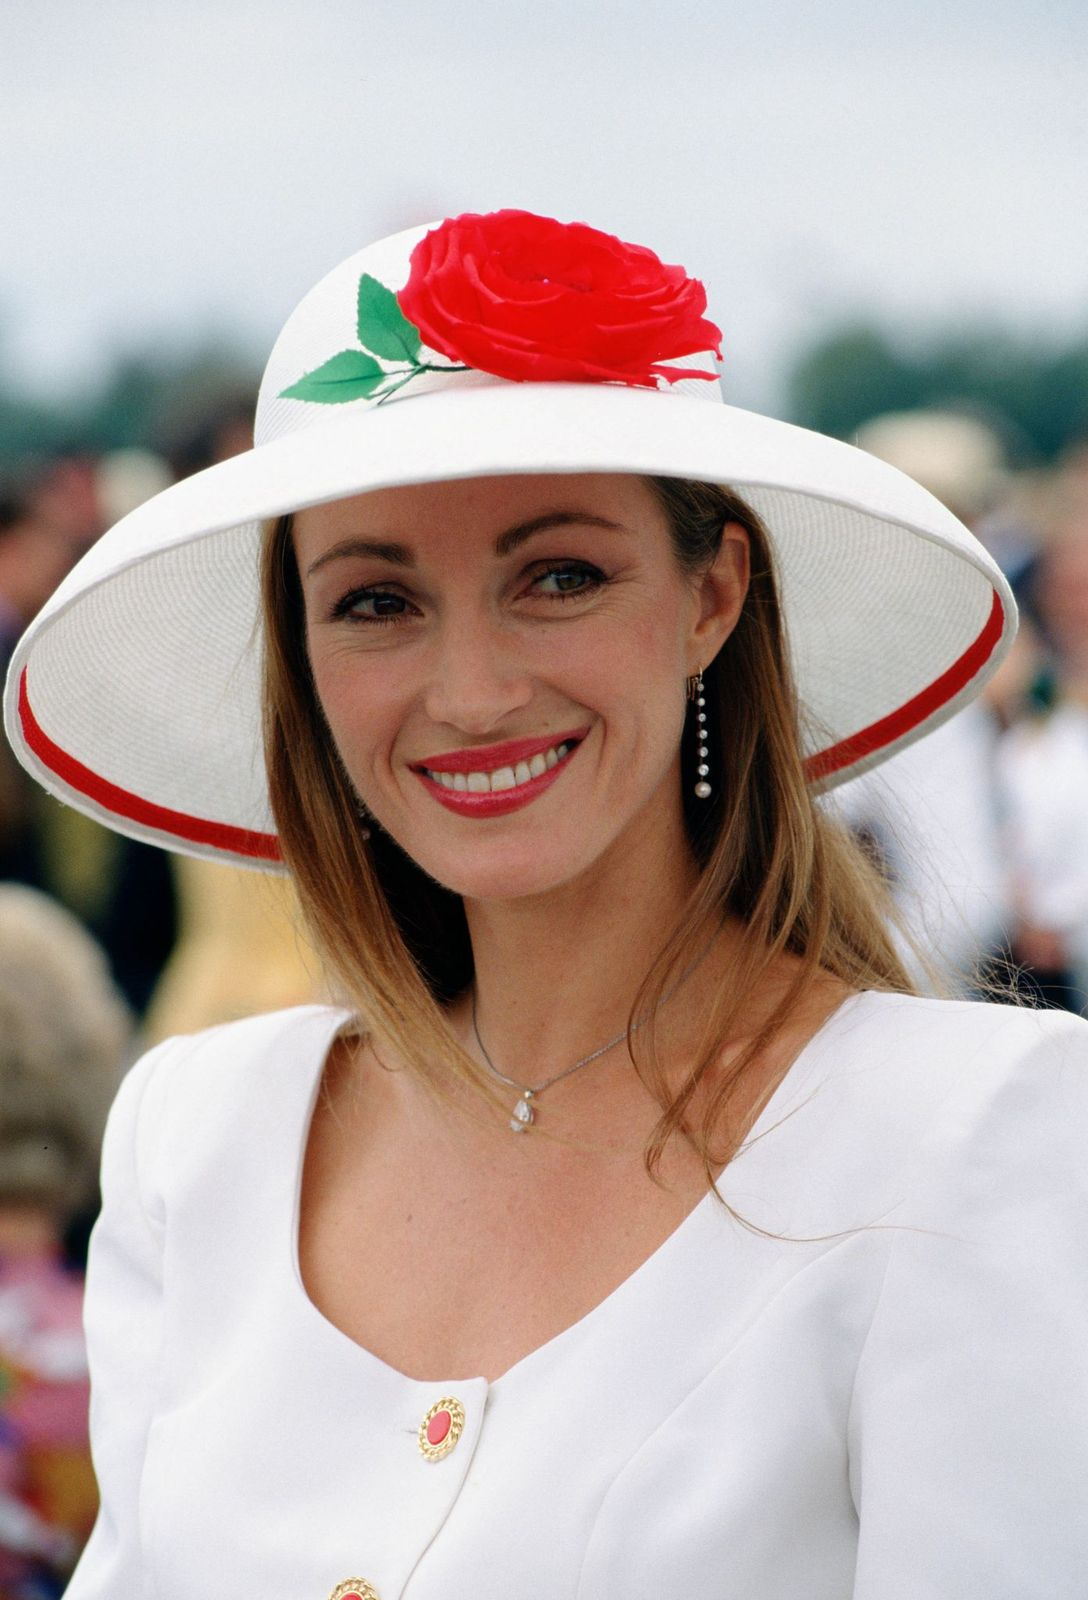 Actress Jane Seymour at Cartier Polo Day, Windsor, Berkshire, UK on July 29, 1990 | Photo: Getty Images